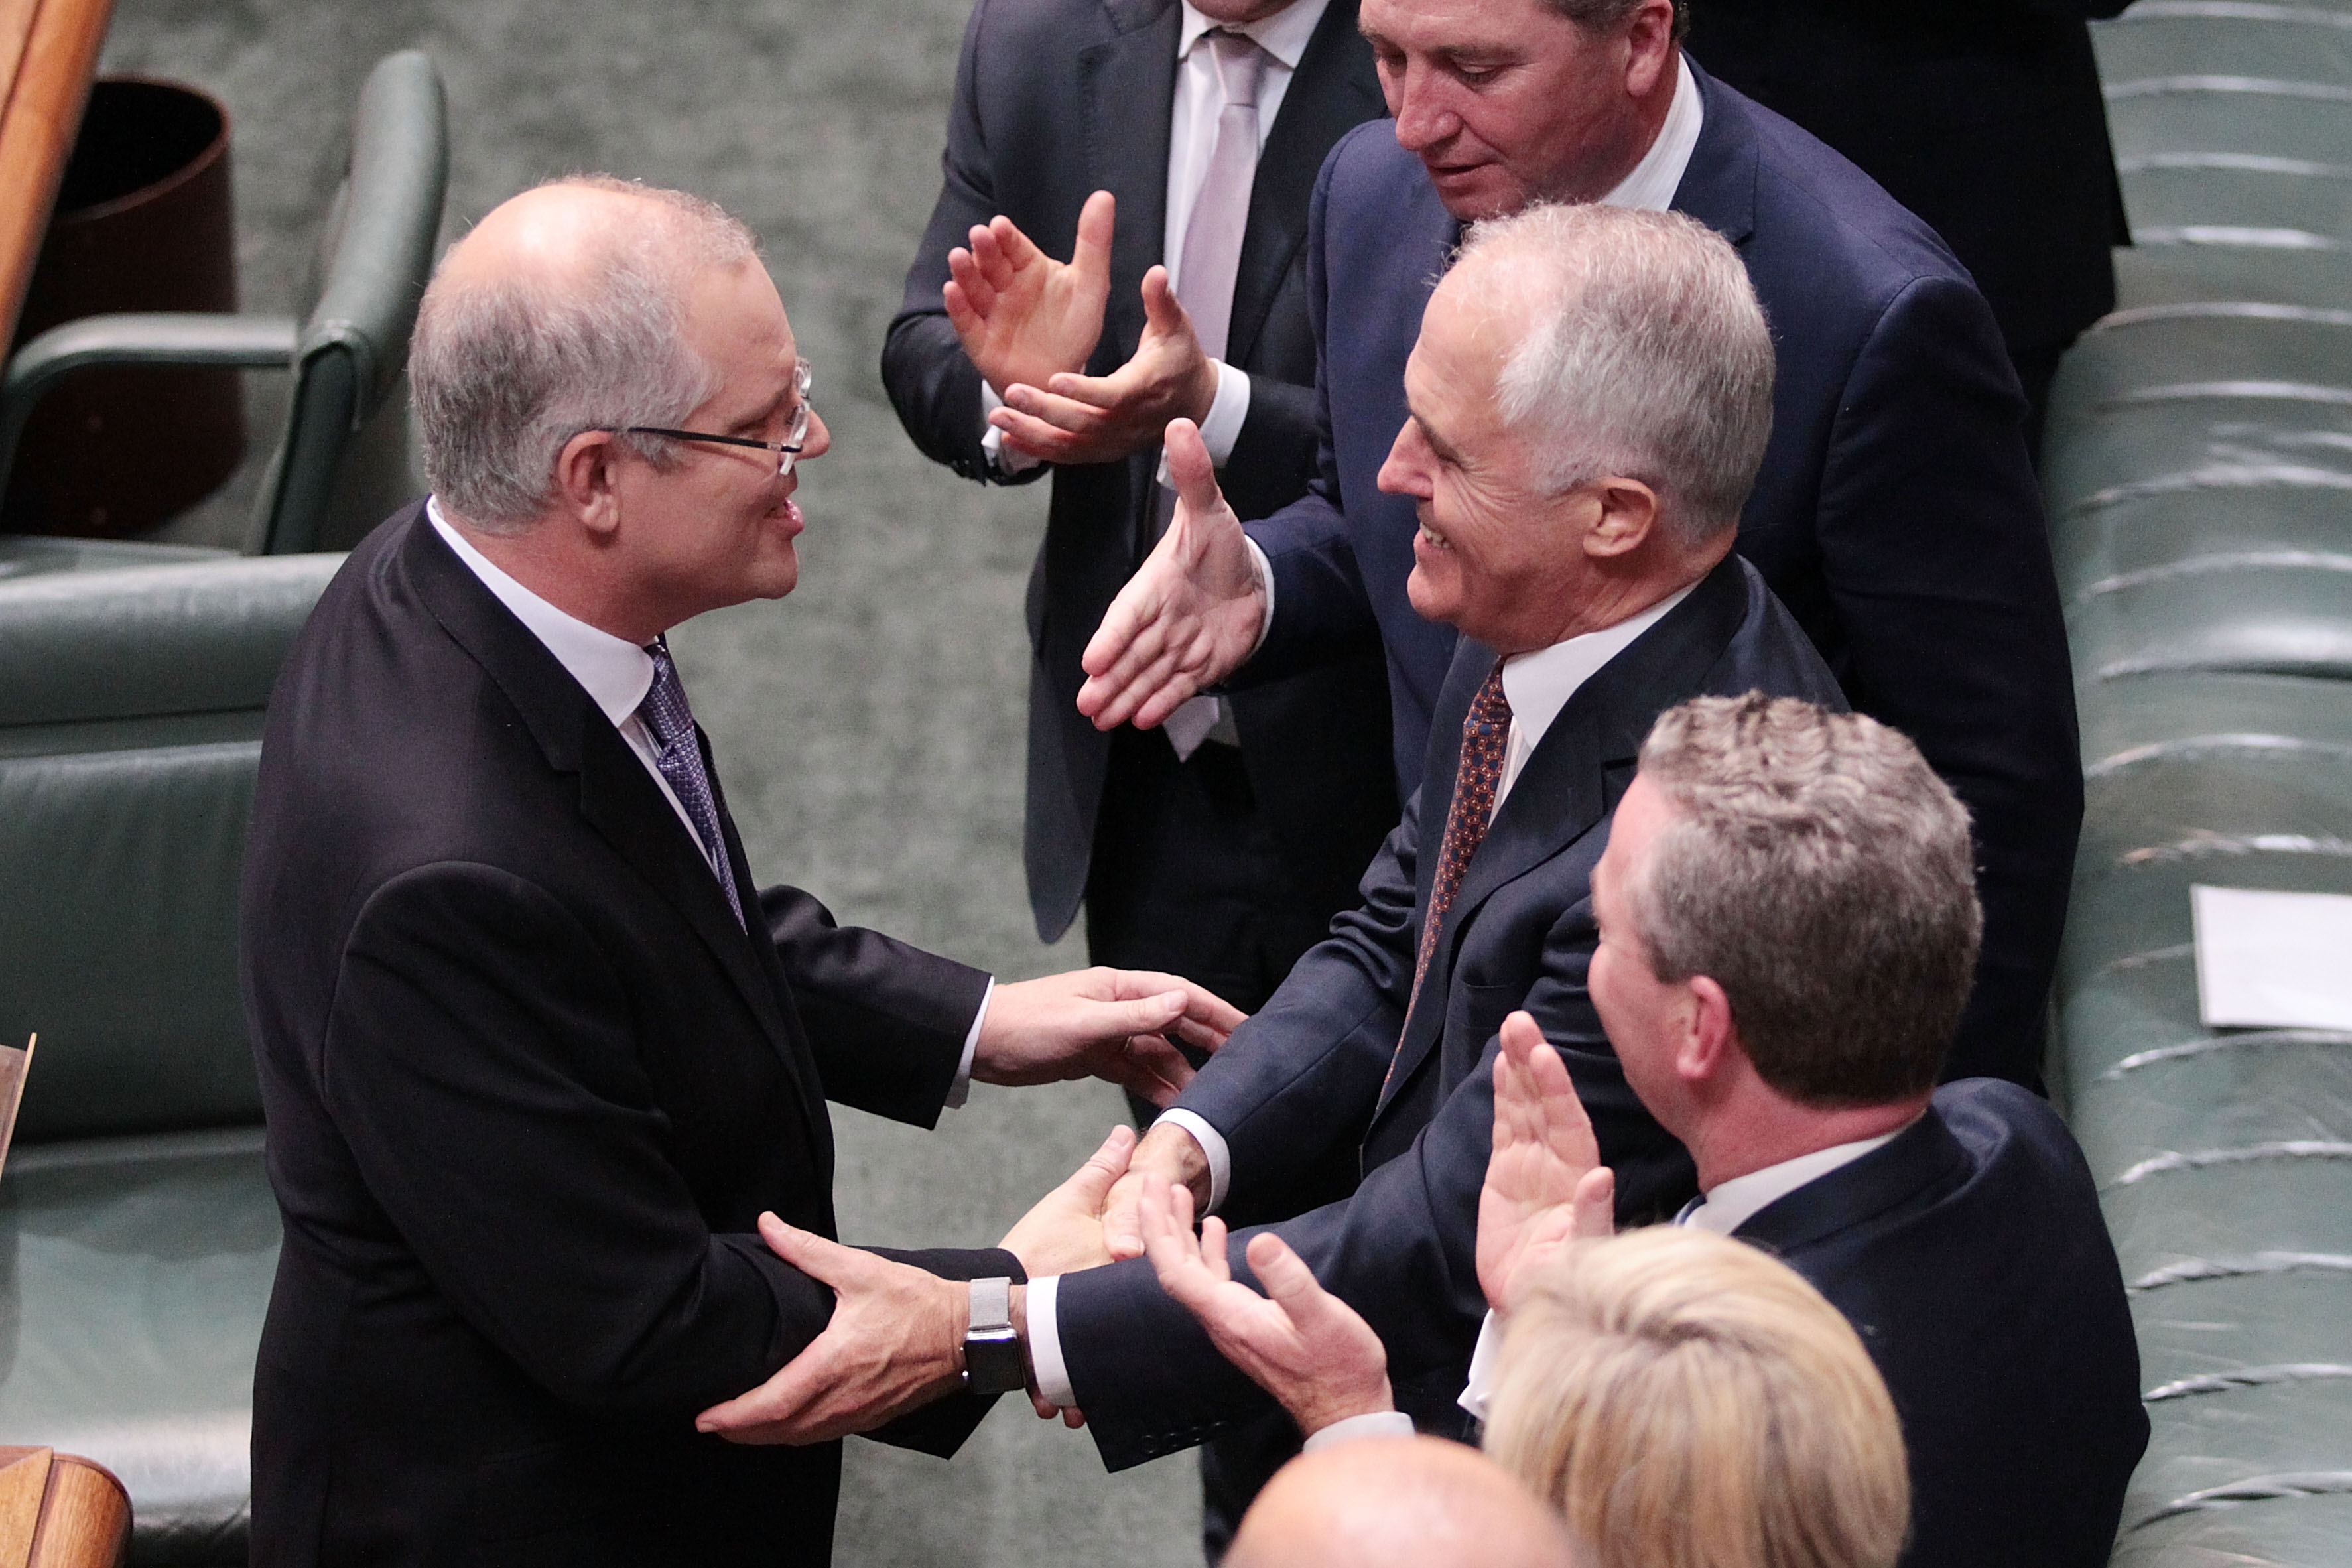 Then-treasurer Scott Morrison is congratulated by Prime Minister Malcolm Turnbull after delivering the budget in the House of Representatives in 2017.